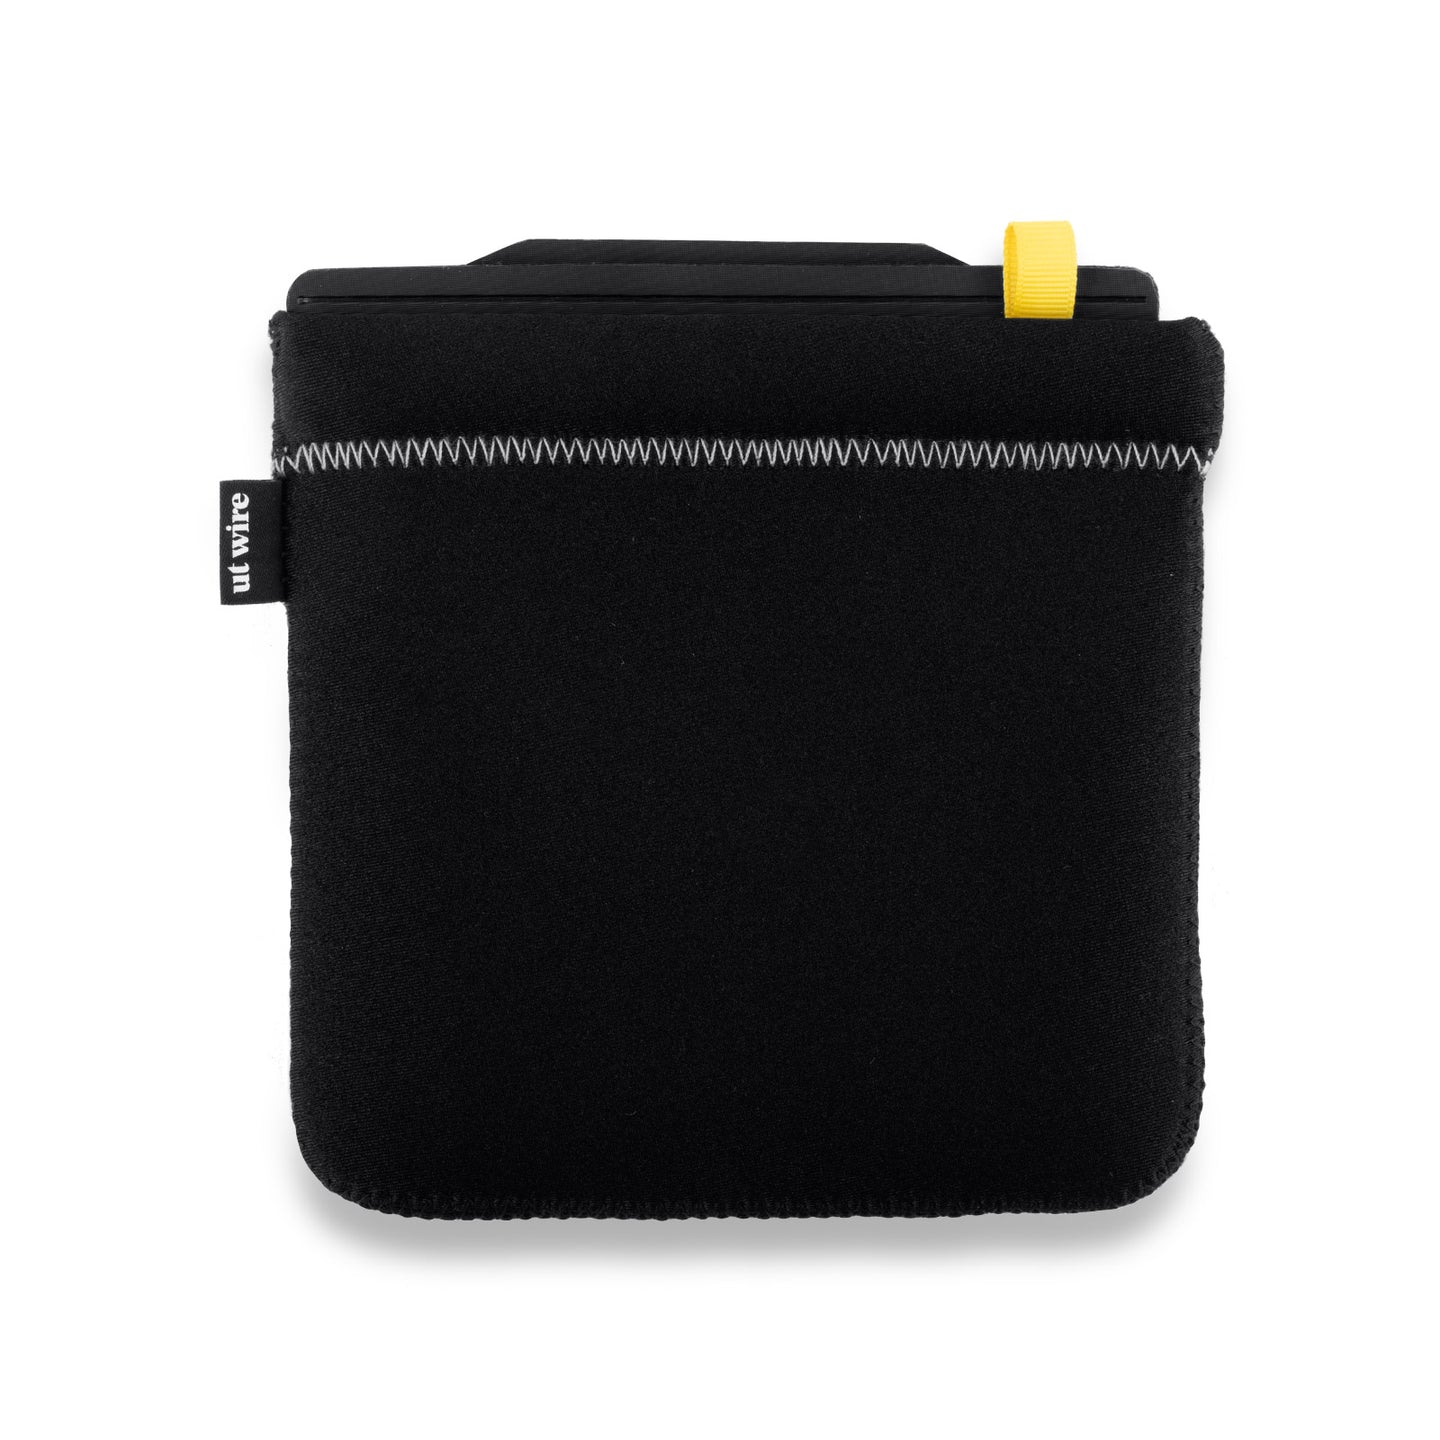 Pocket for Tech Accessories